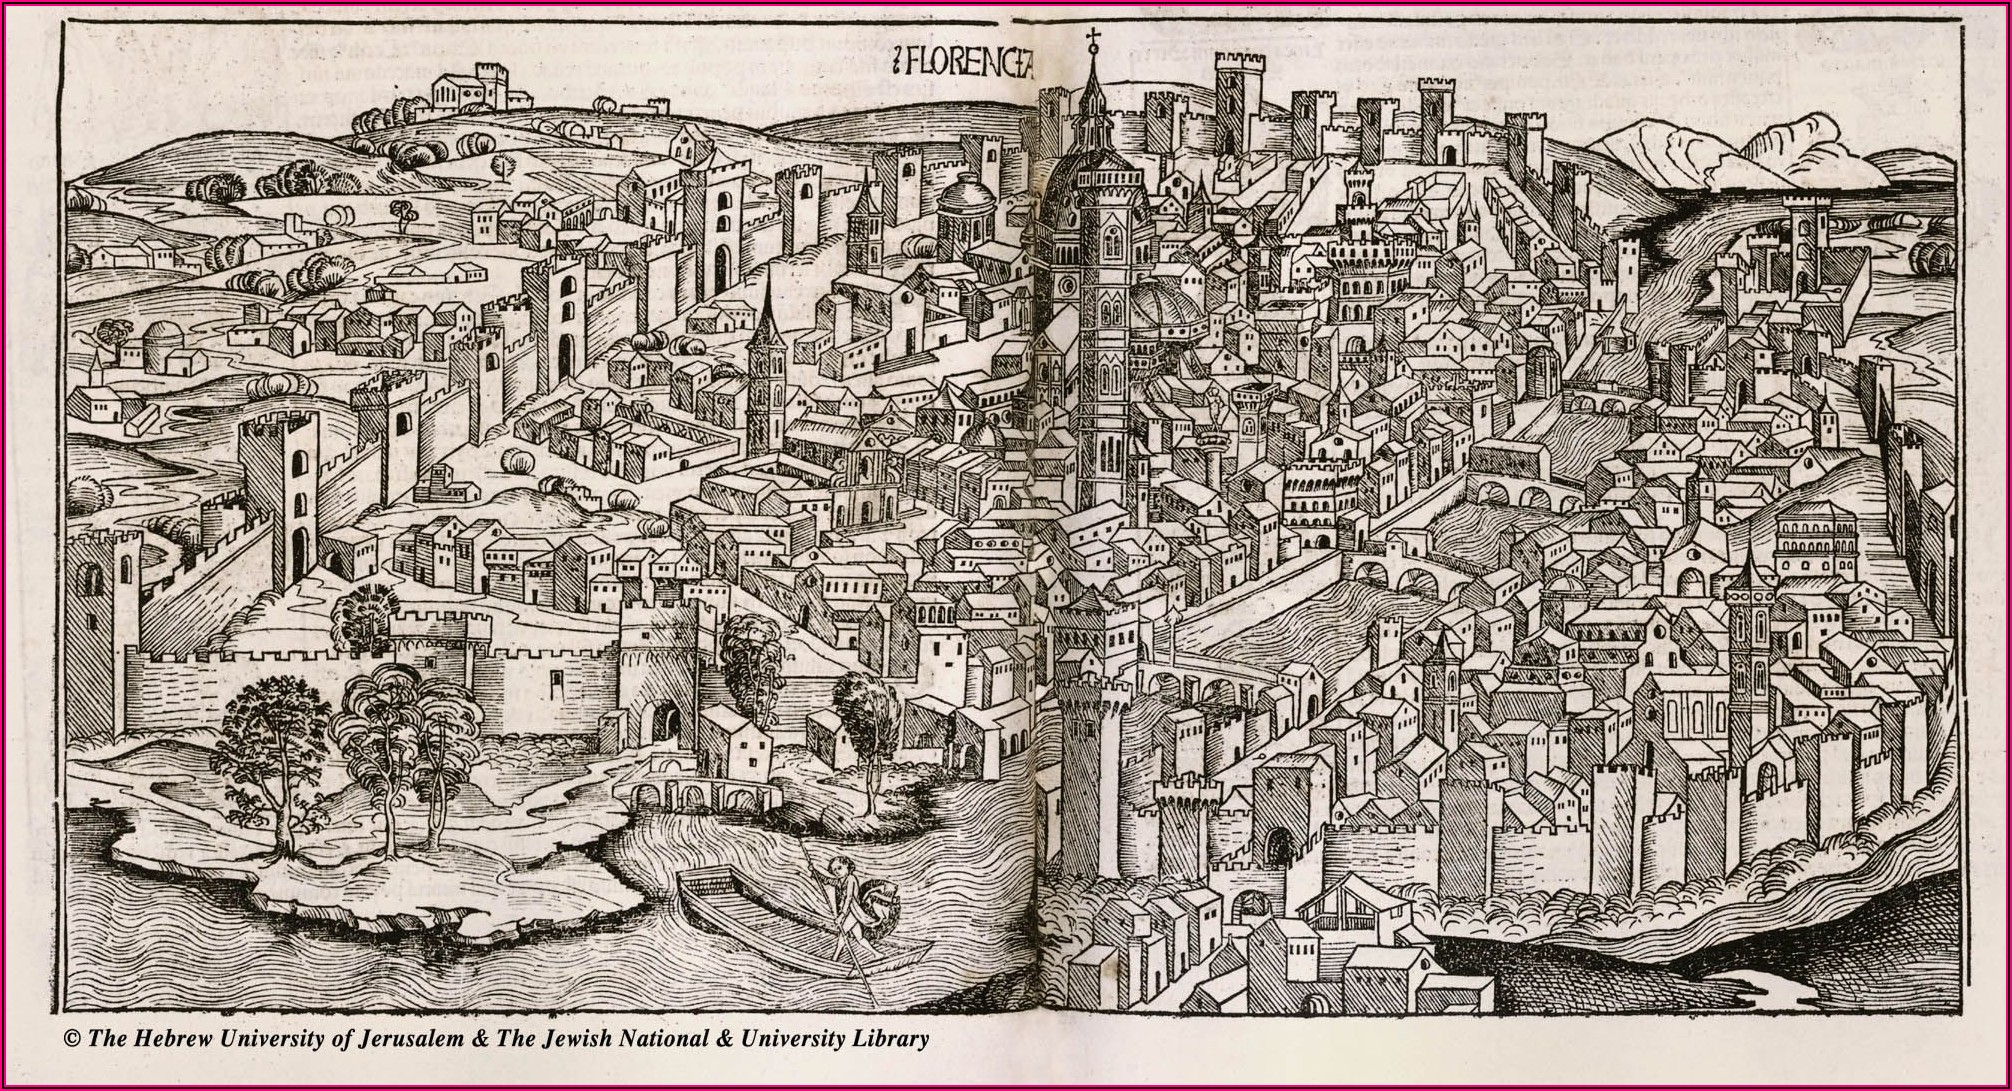 Antique Map Of Florence Italy